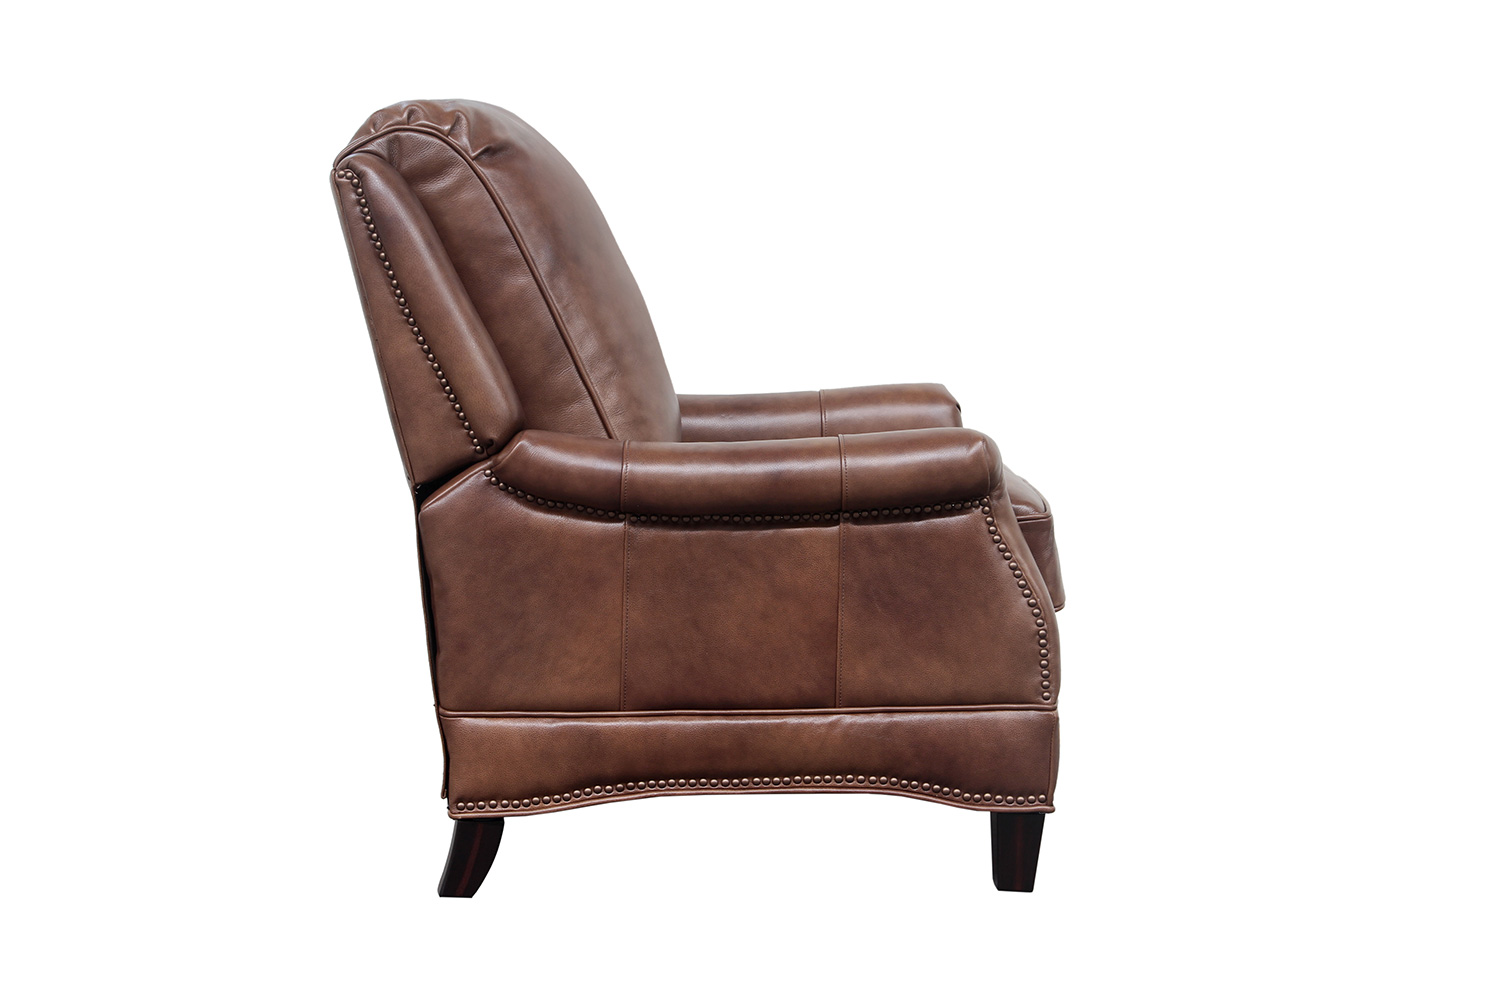 Barcalounger Ashebrooke Recliner Chair - Wenlock Tawny/All Leather